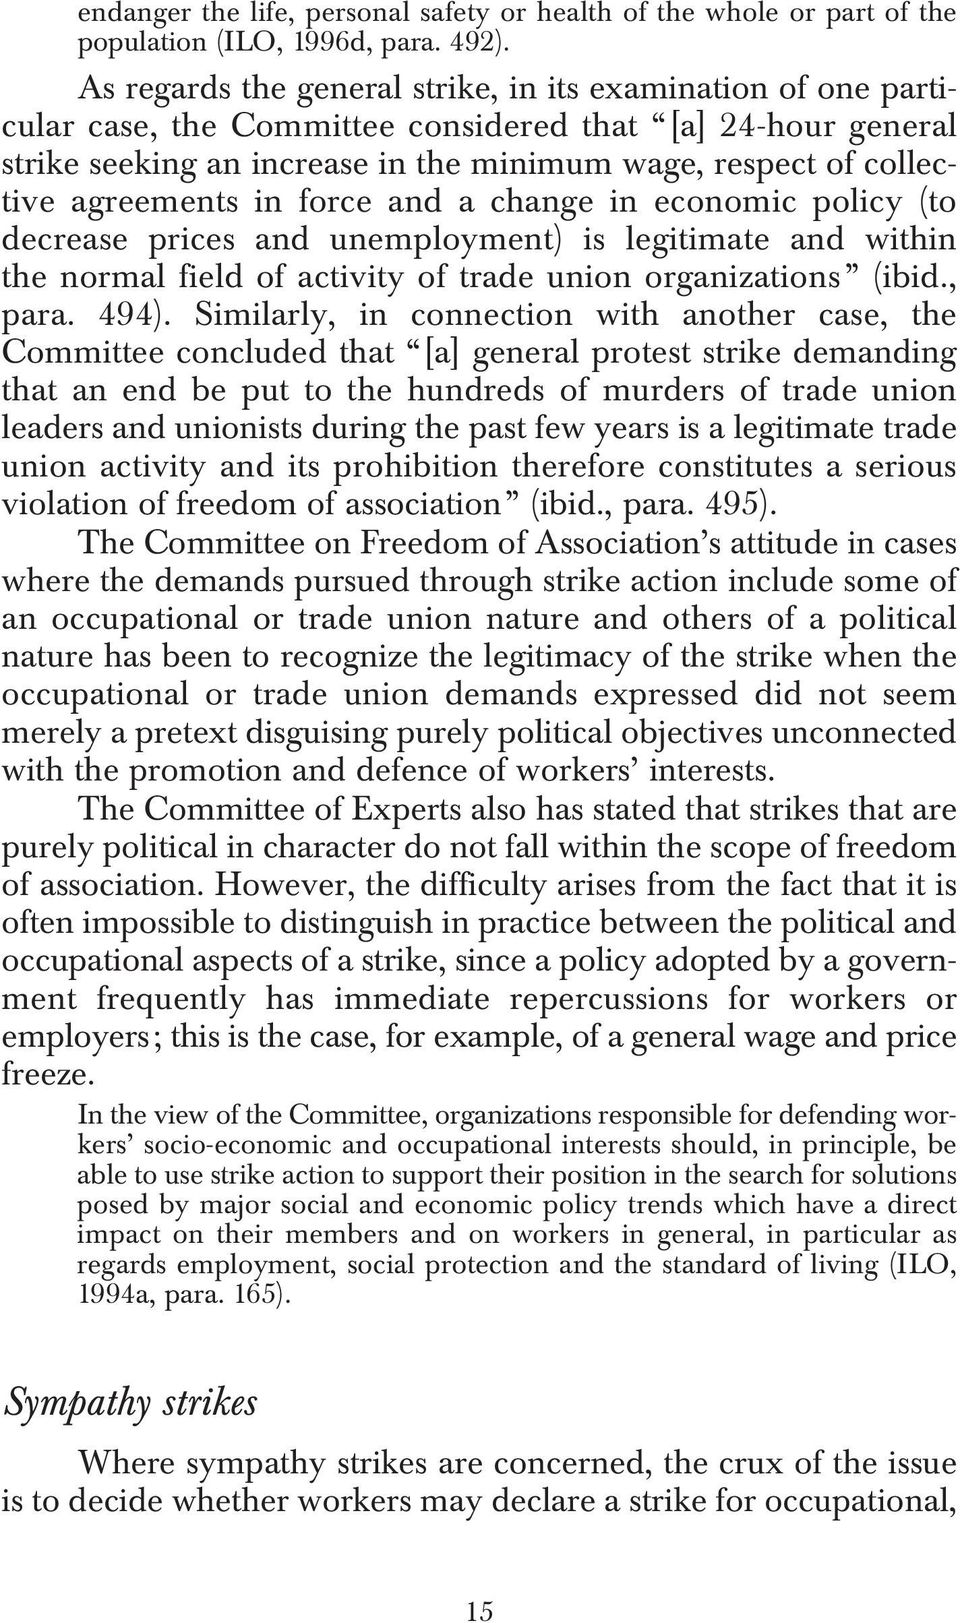 agreements in force and a change in economic policy (to decrease prices and unemployment) is legitimate and within the normal field of activity of trade union organizations (ibid., para. 494).